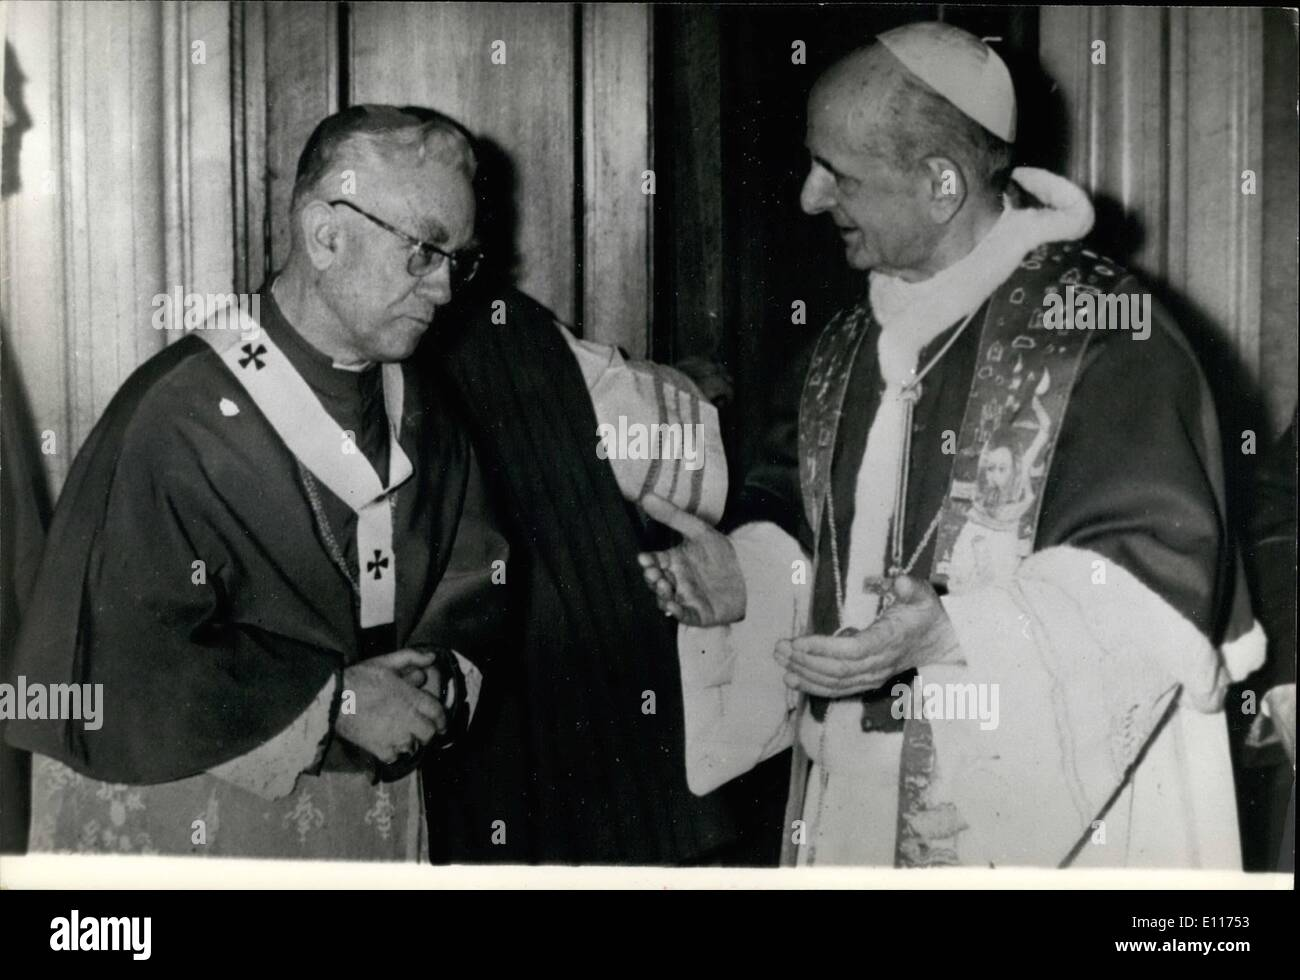 Mar. 03, 1976 - The new Primate of Hungary Mons. Laszlo Lekai, now in Rome, received by the Pope Paul VI the sacred pallium of his charge. - Stock Image